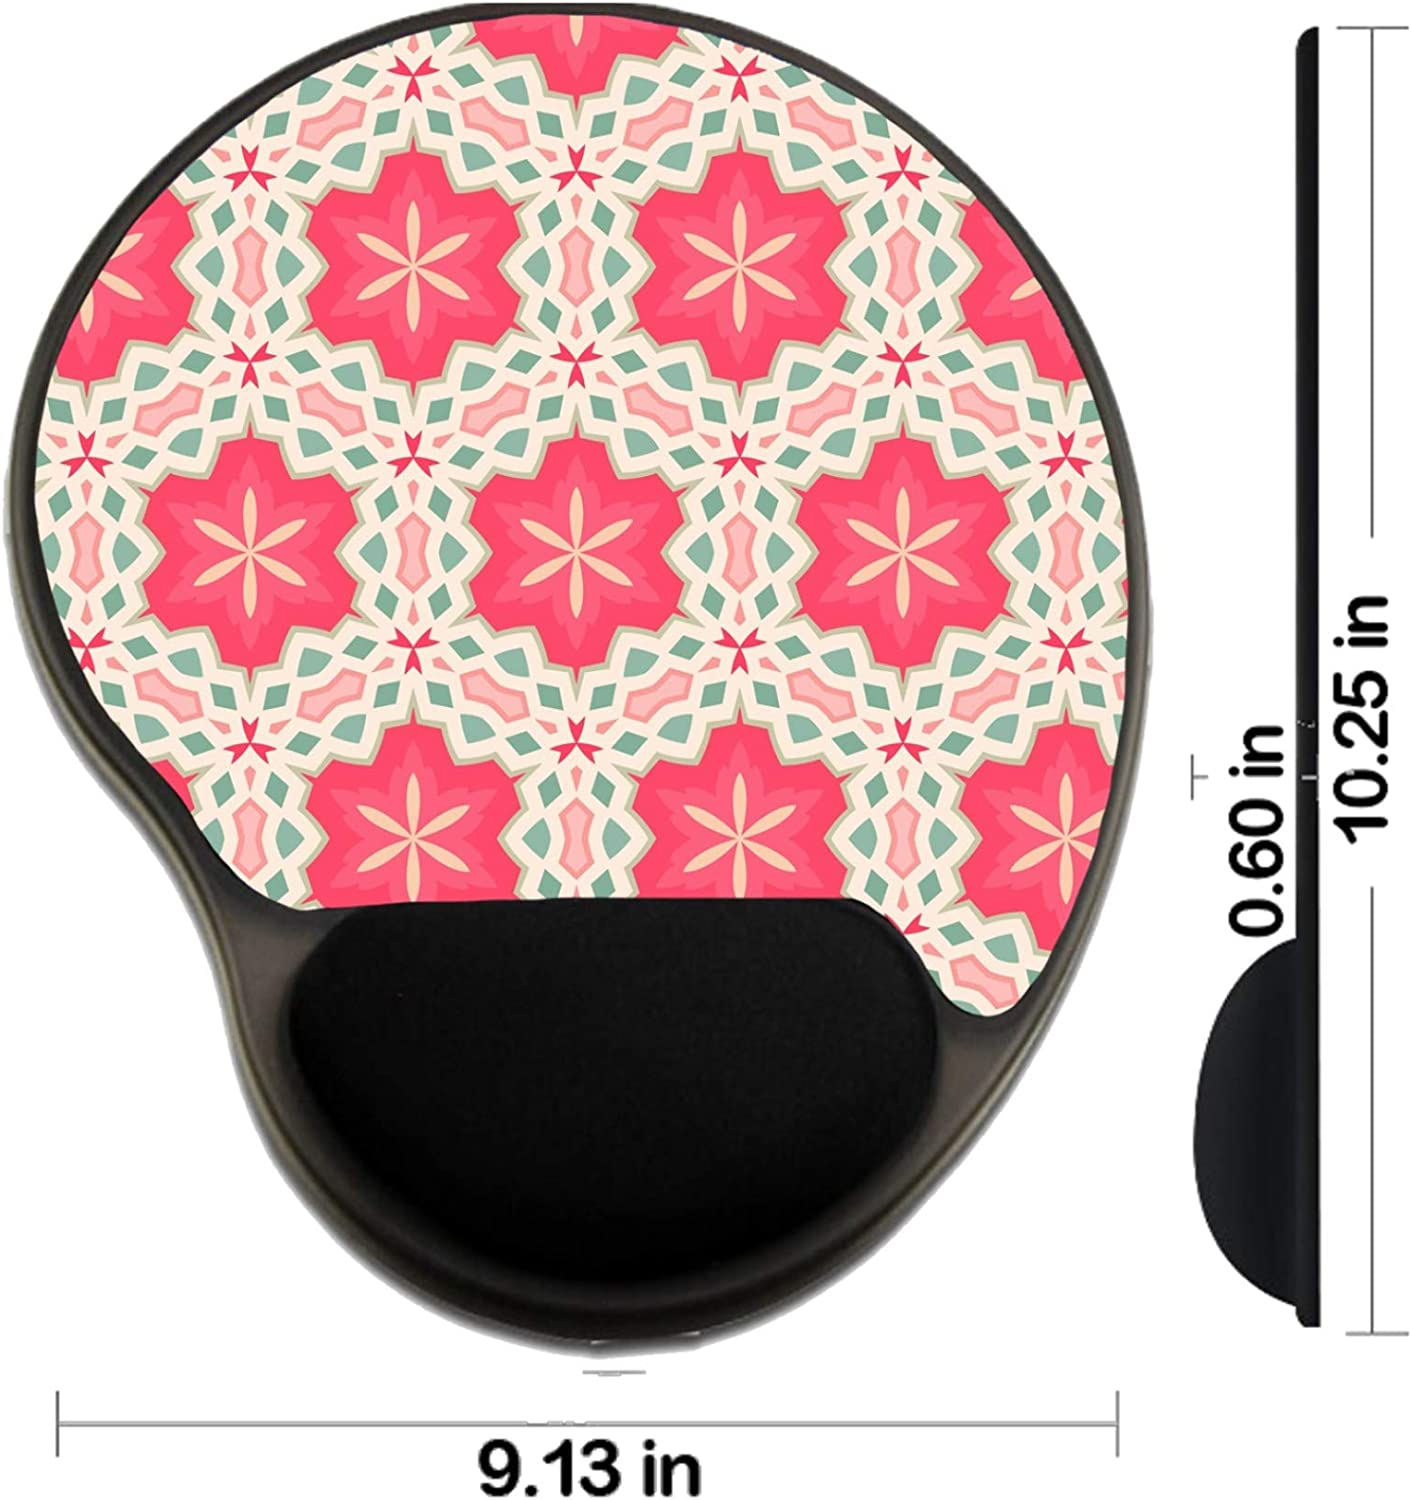 Mat with Wrist Support Image ID MSD Mousepad Wrist Rest Protected Mouse Pads 19824874 Cherry Drink Splash Close up Back